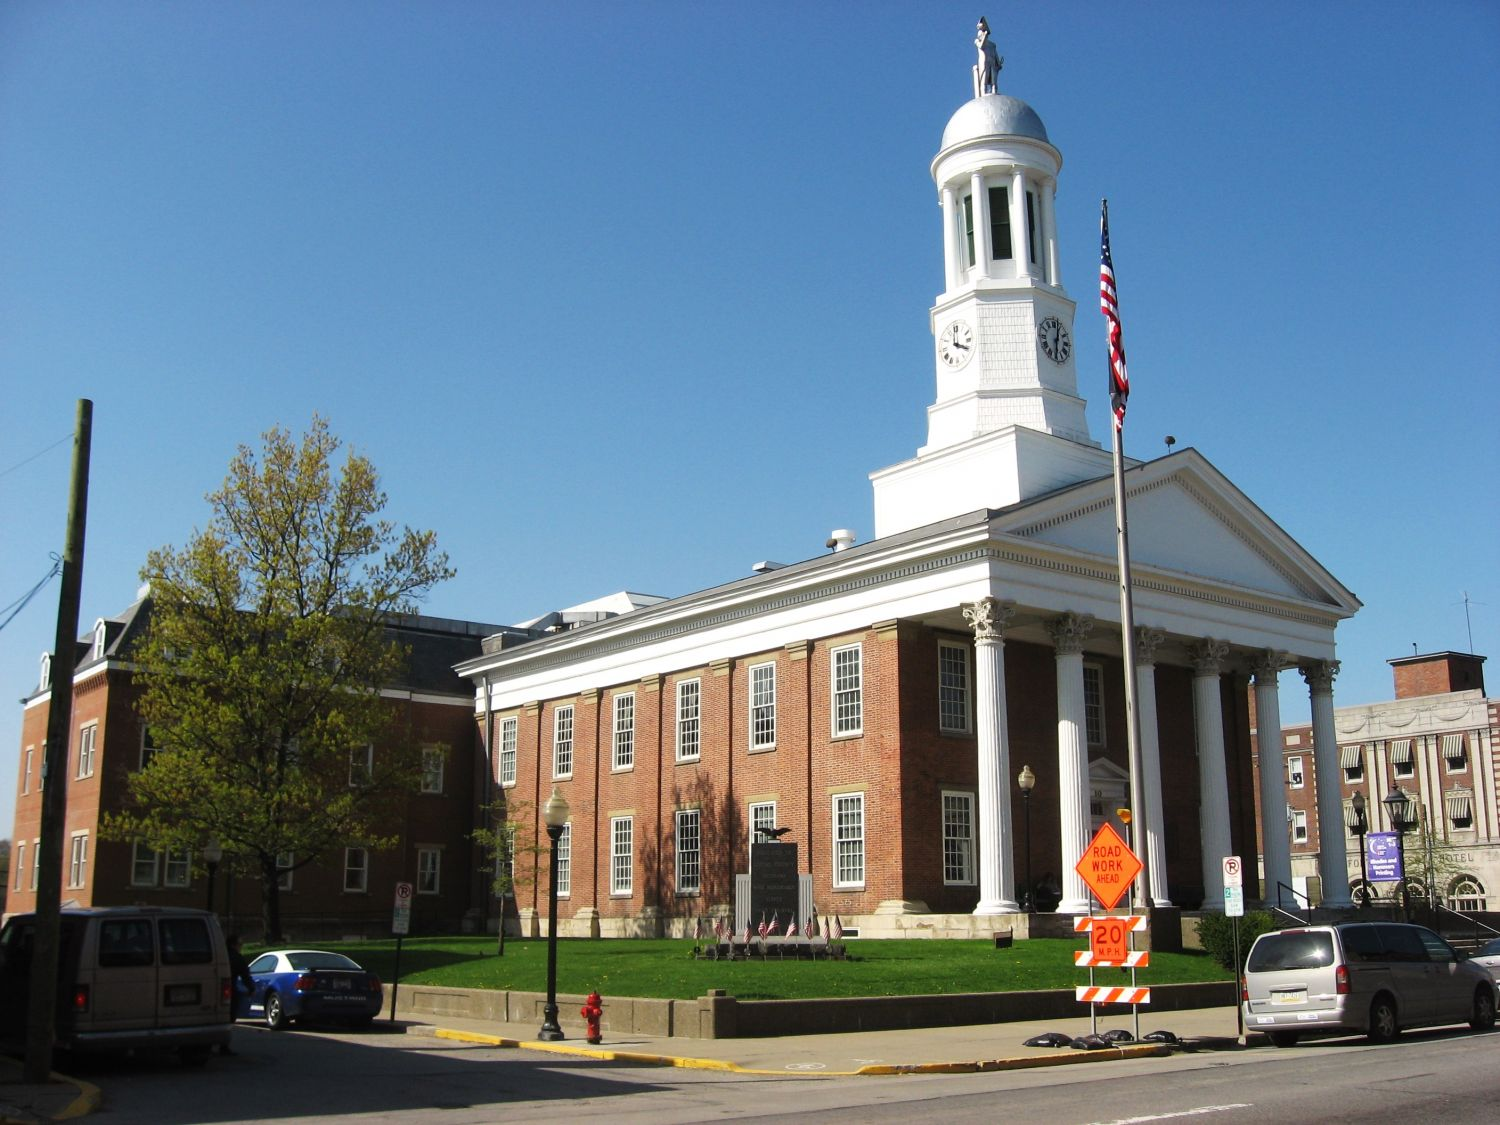 Greene County Courthouse, Waynesburg PA - Photo Credit: Nyttend [Public domain], from Wikimedia Commons